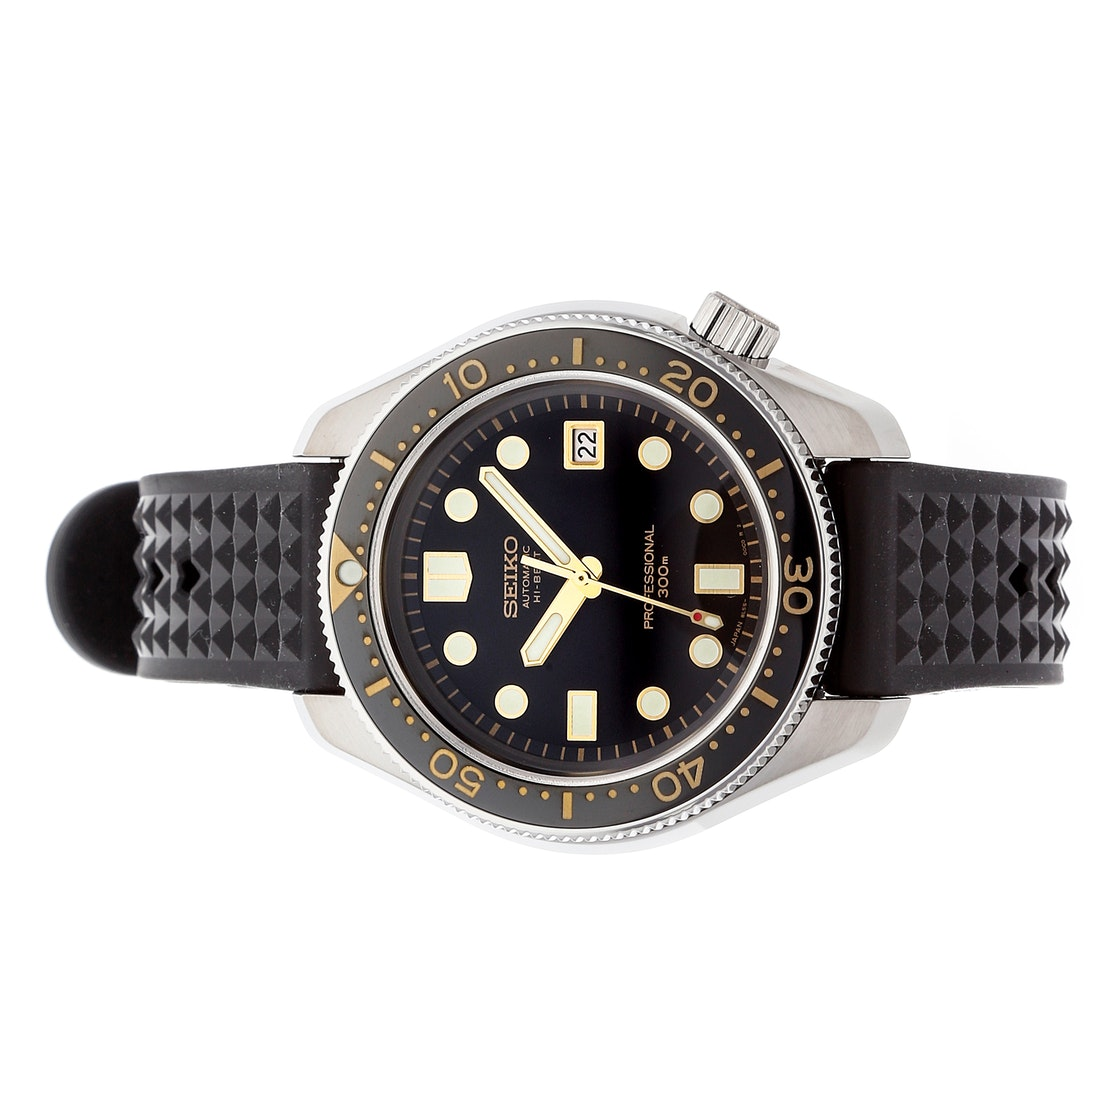 Seiko Prospex Hi-Beat 1968 Limited Edition SLA025